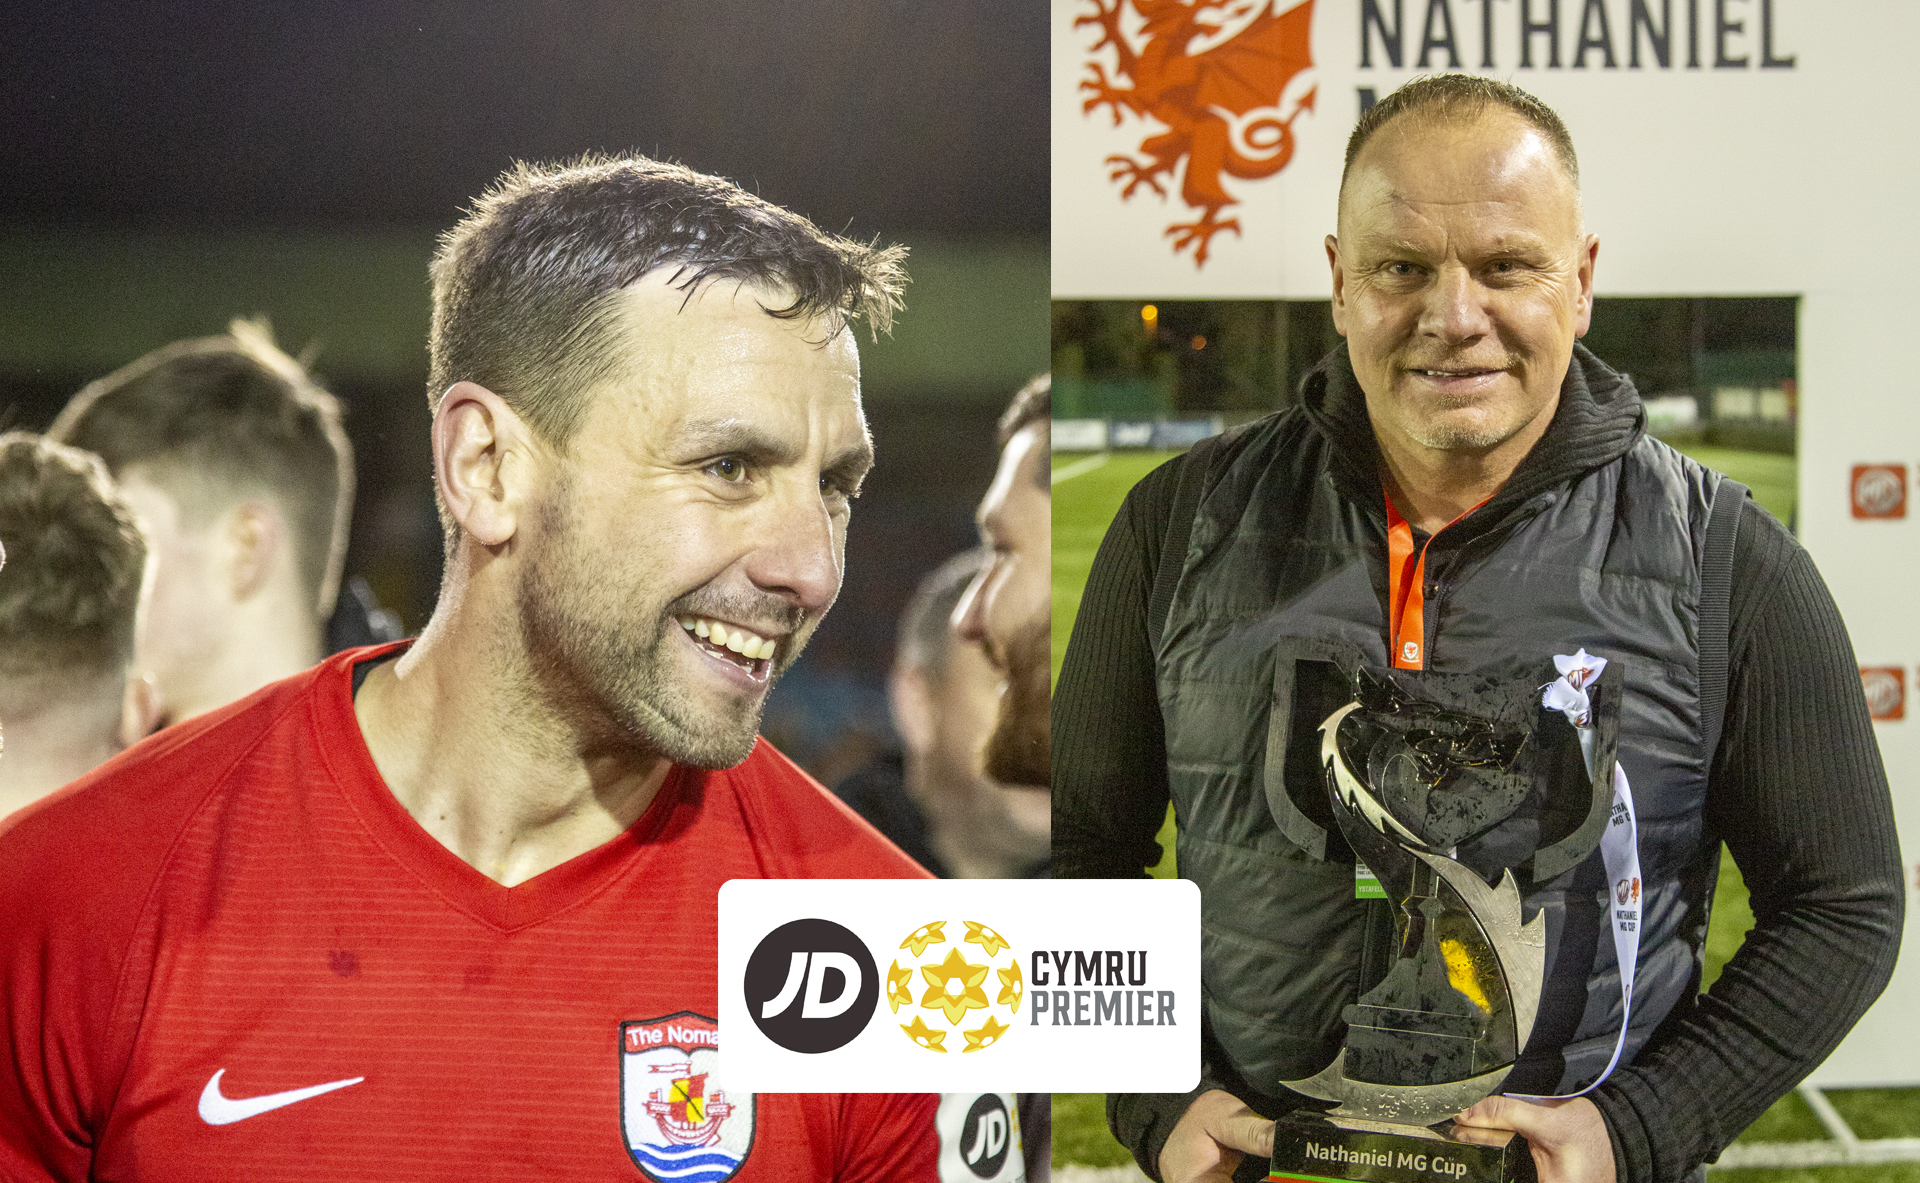 George Horan and Andy Morrison have been named as the JD Cymru Premier Player and Manager of the Month for February 2020